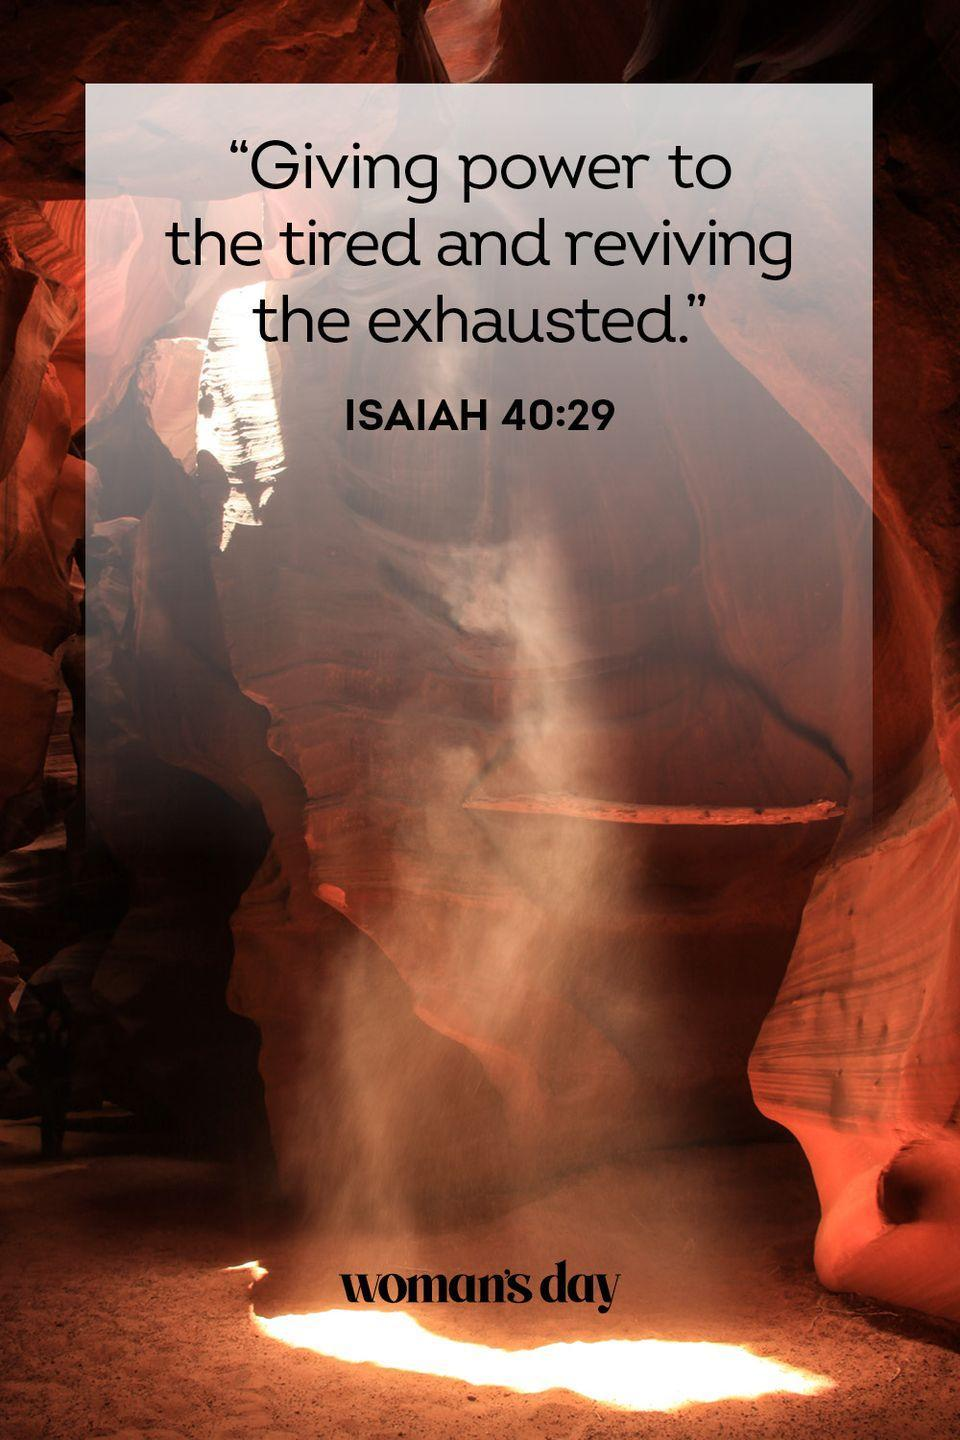 """<p>""""Giving power to the tired and reviving the exhausted."""" — Isaiah 40:29</p><p><strong>The Good News: </strong>God doesn't just guide us through hard times, he makes us stronger to withstand them. He will not leave us hanging even in the darkest of days.</p>"""